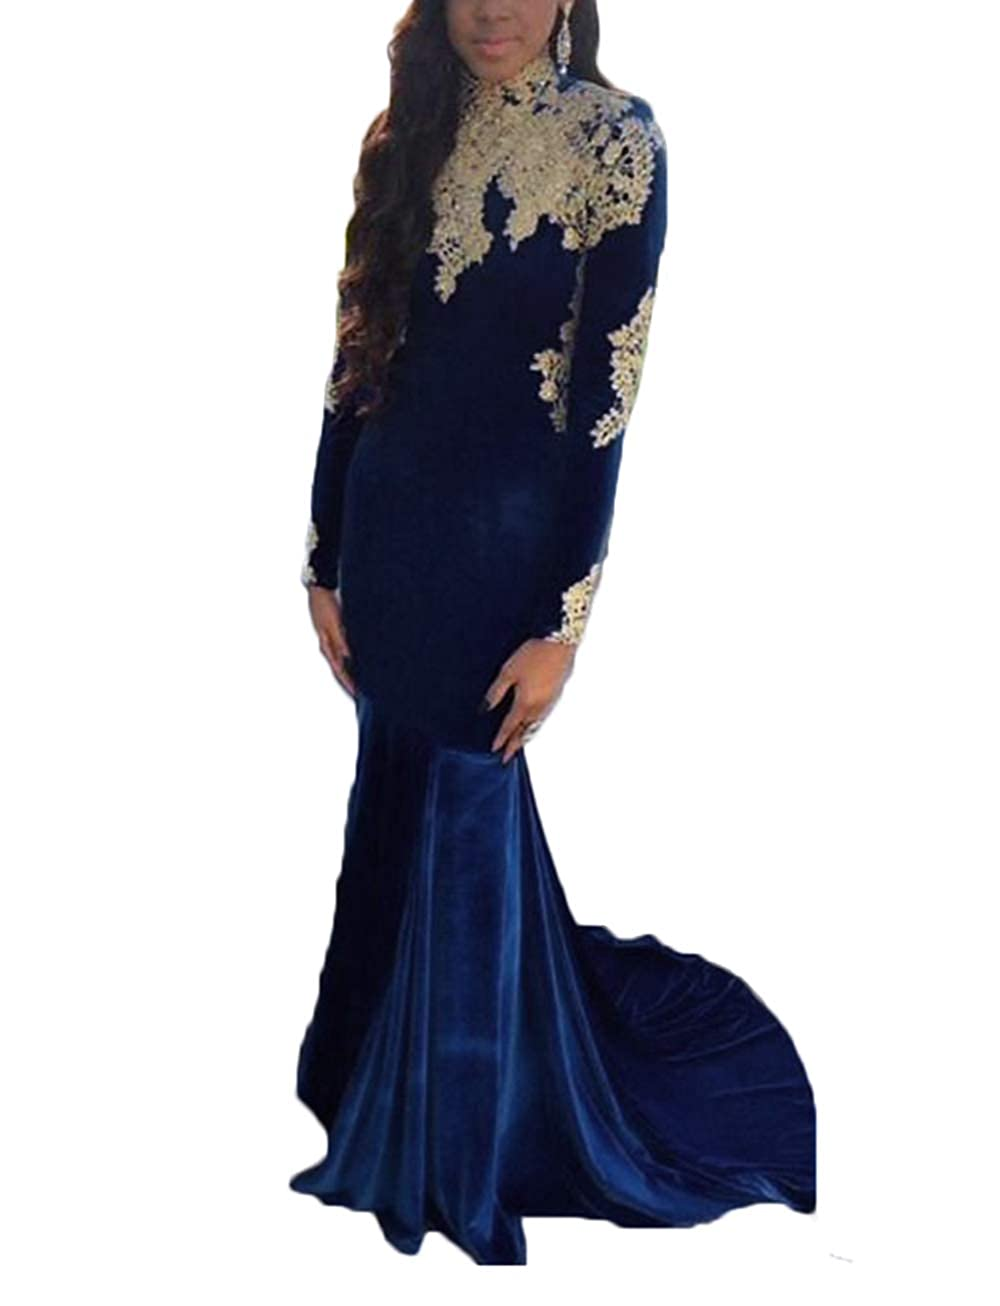 Navy bluee alilith.Z Sexy High Neck Velvet Prom Dresses 2019 Mermaid Appliques Party Gowns Formal Evening Dresses for Women with Sleeves